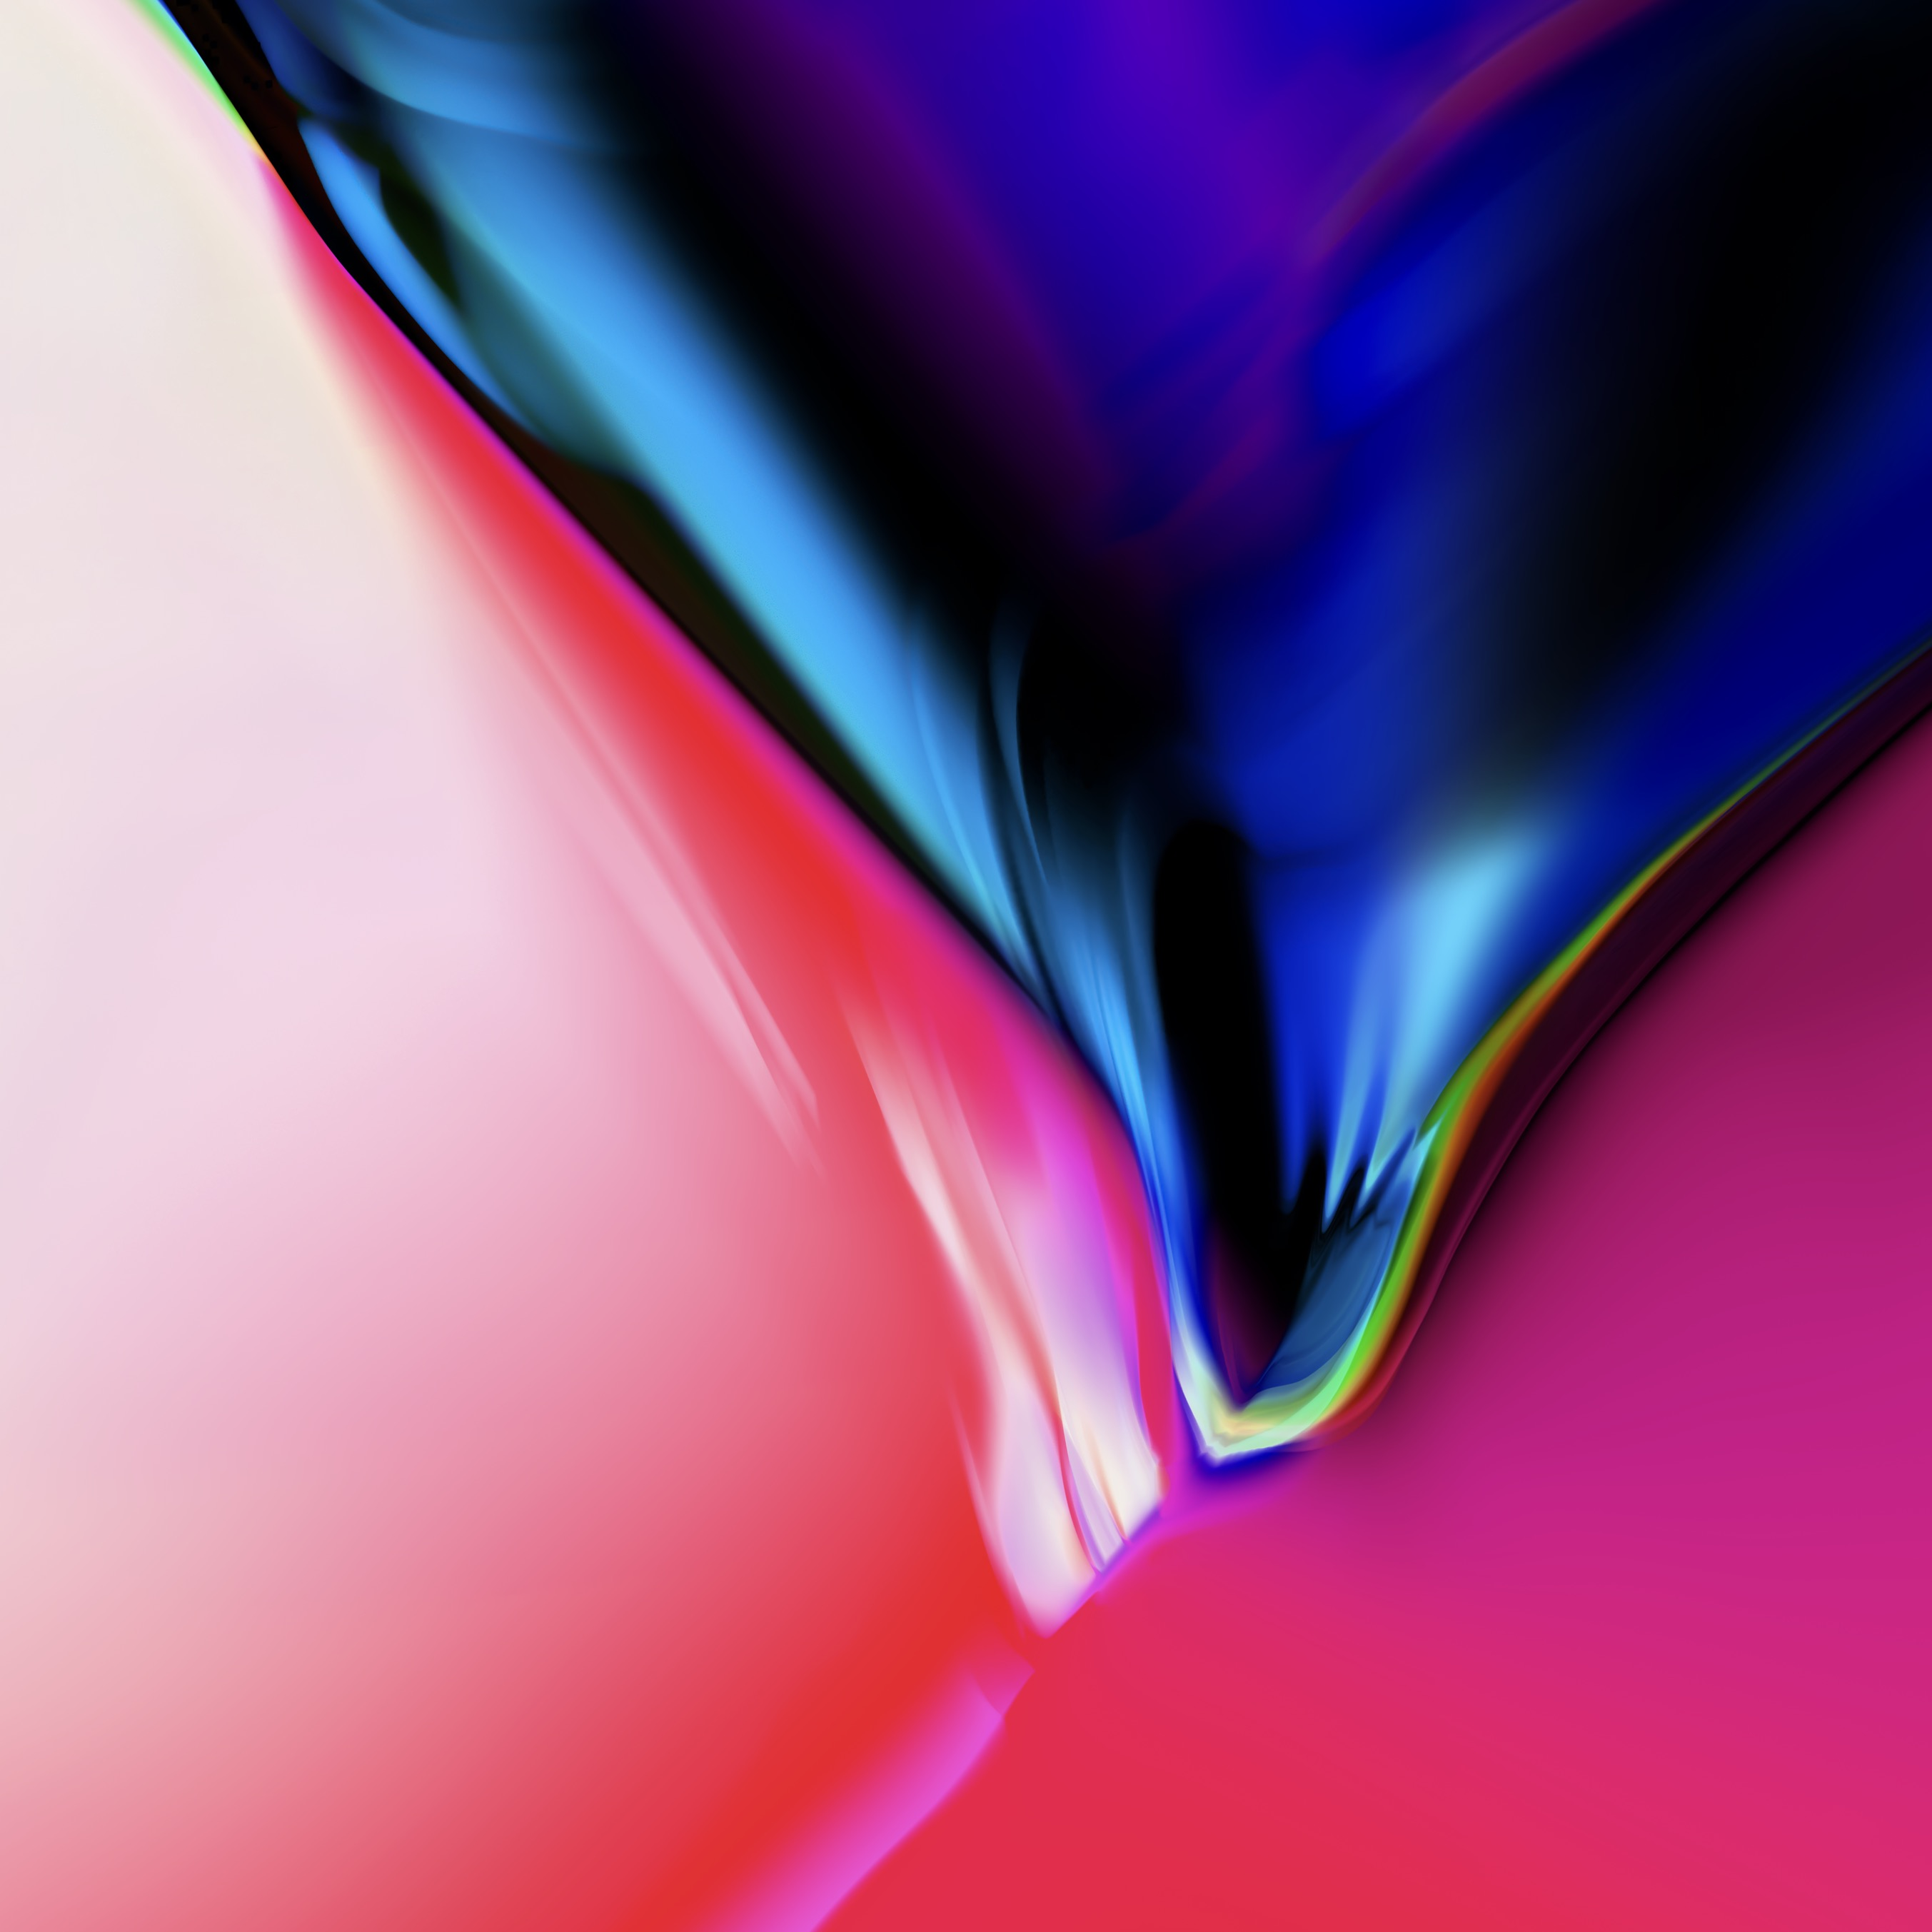 Download The New Ios 11 Wallpapers